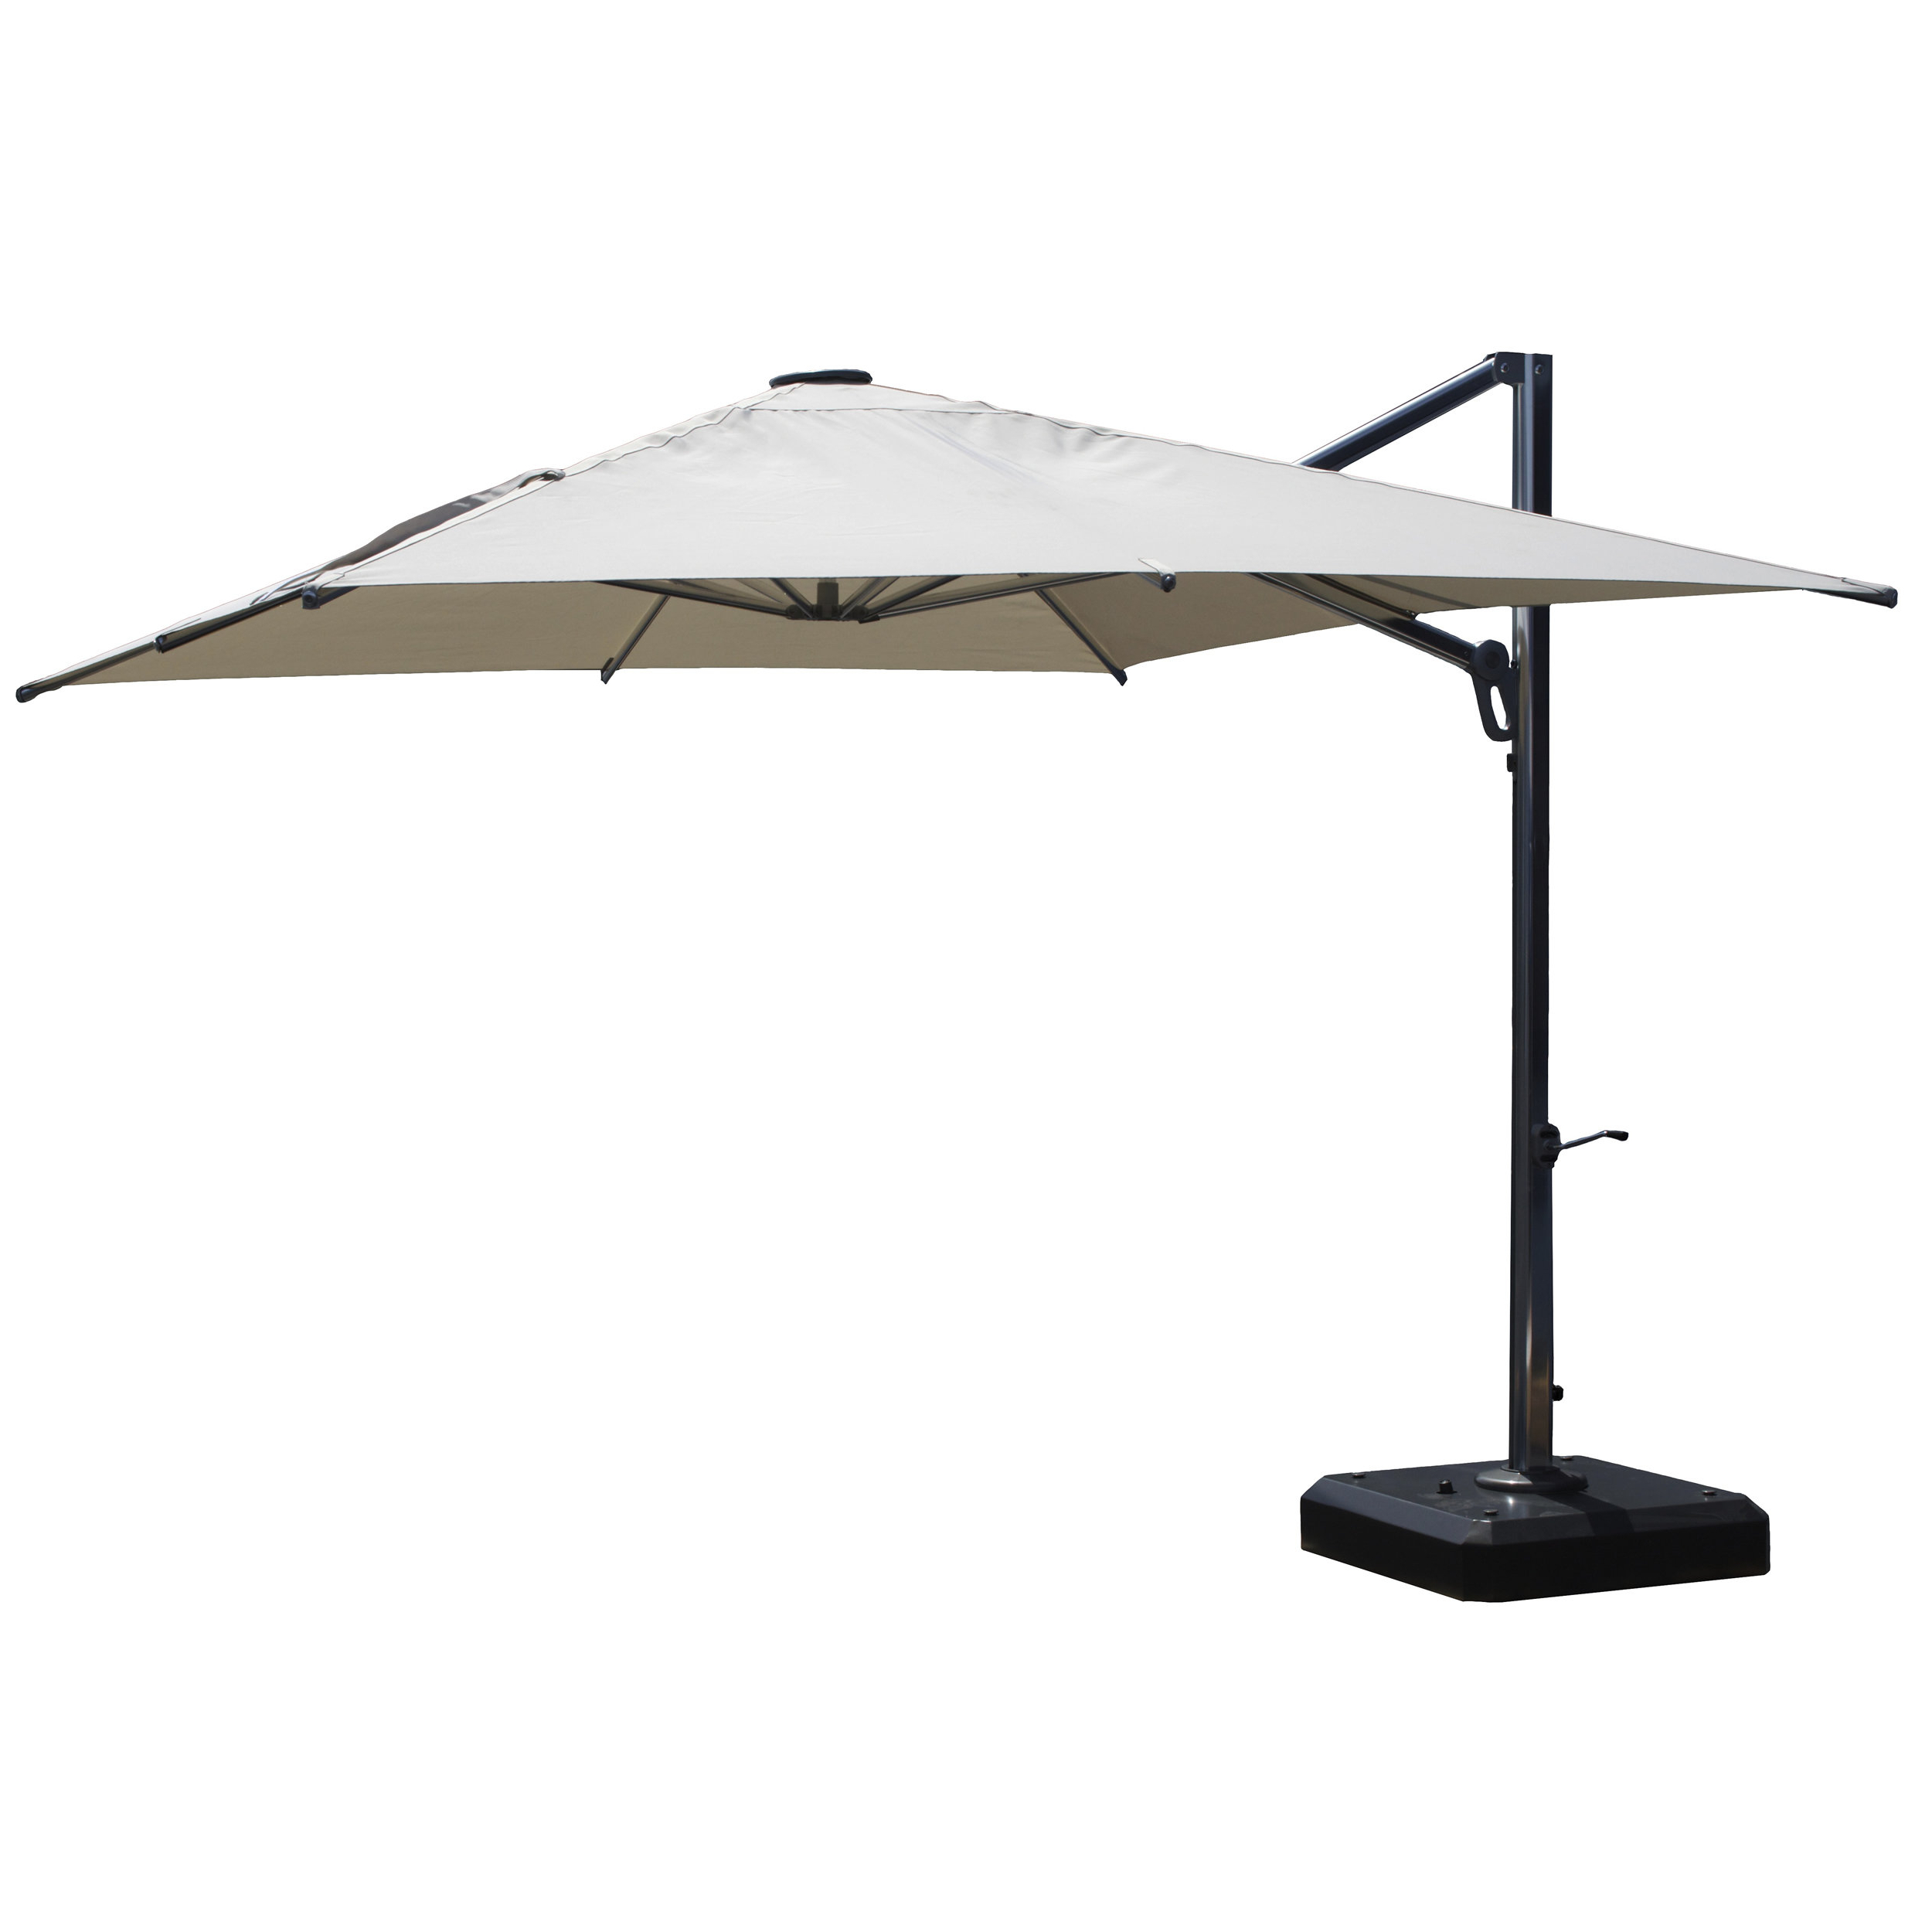 Trendy Grote Liberty Aluminum Square Cantilever Umbrellas Within 10' Square Cantilever Umbrella (View 7 of 20)